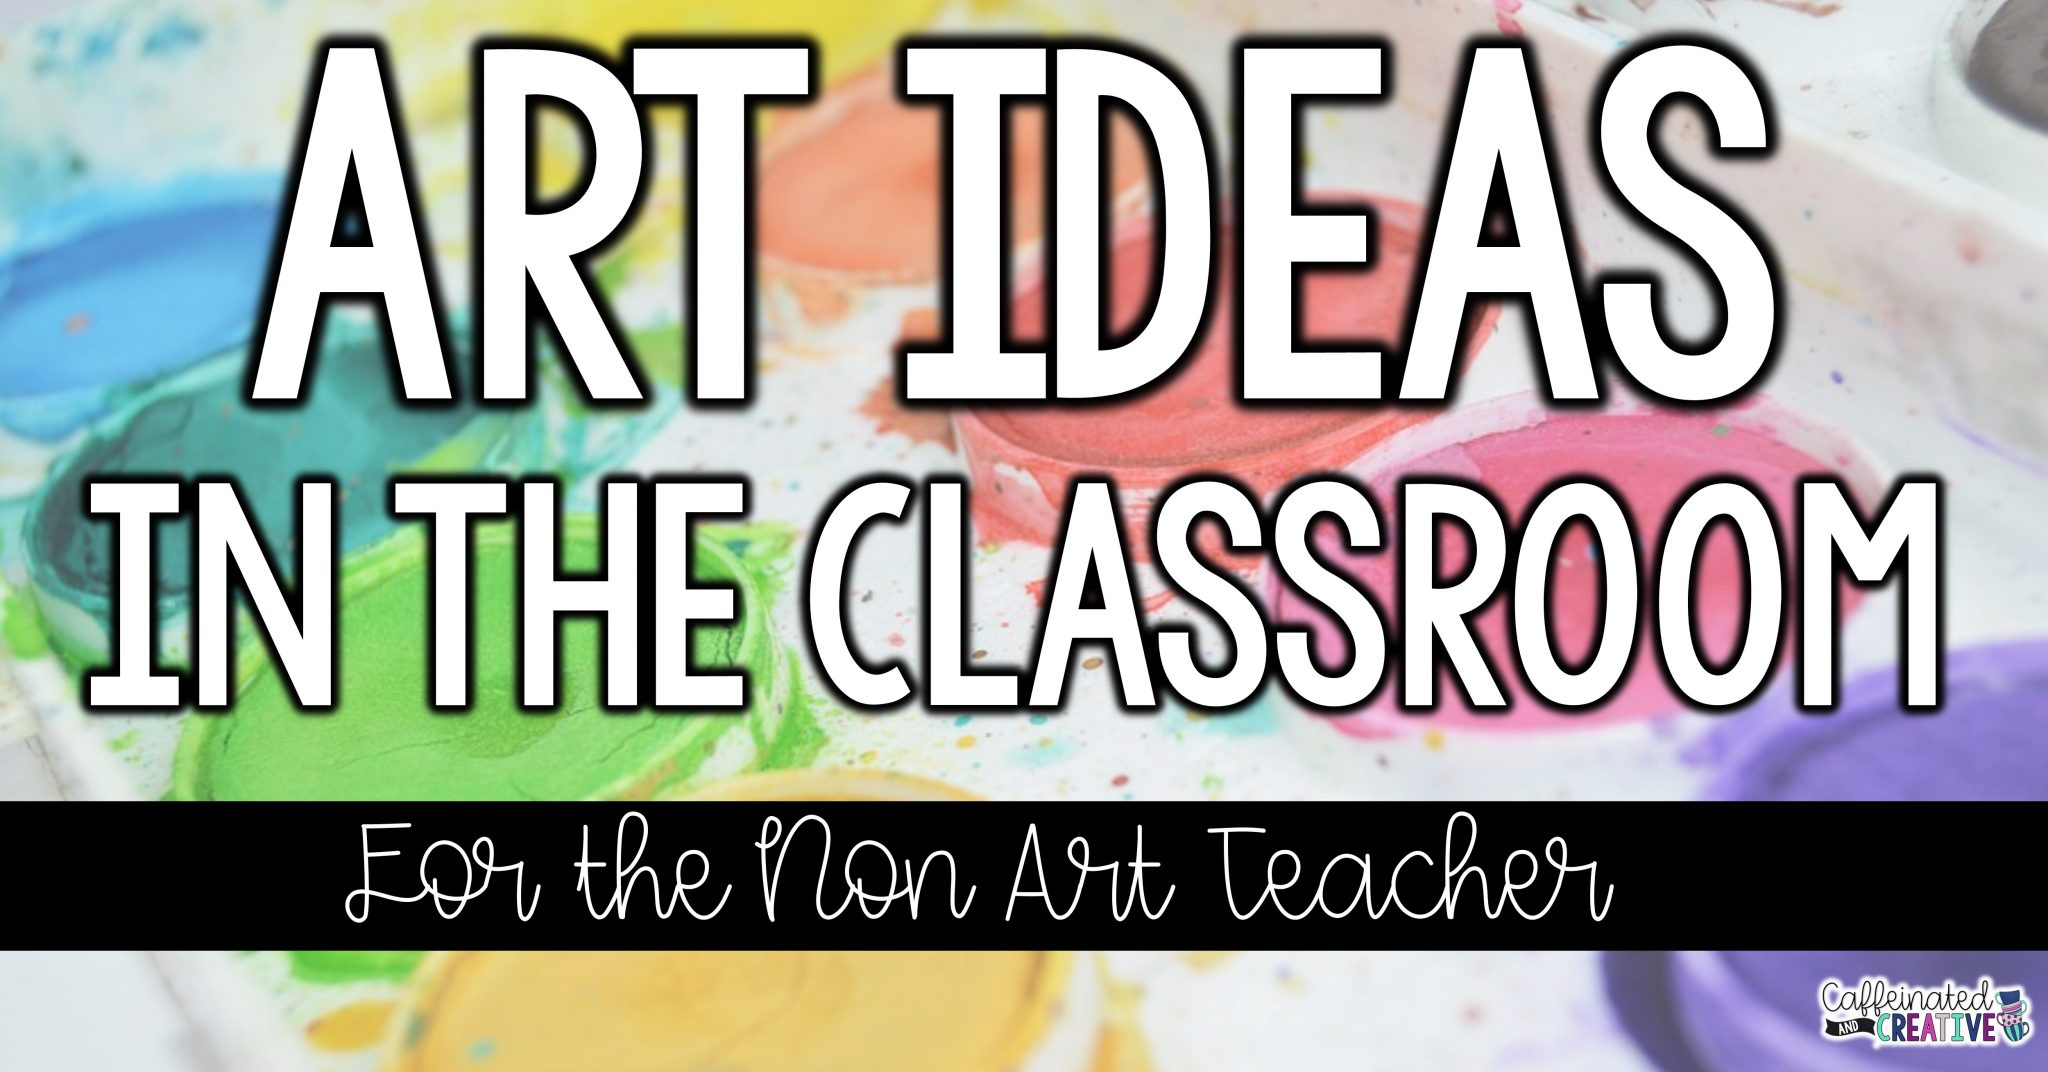 Art Ideas in the Classroom